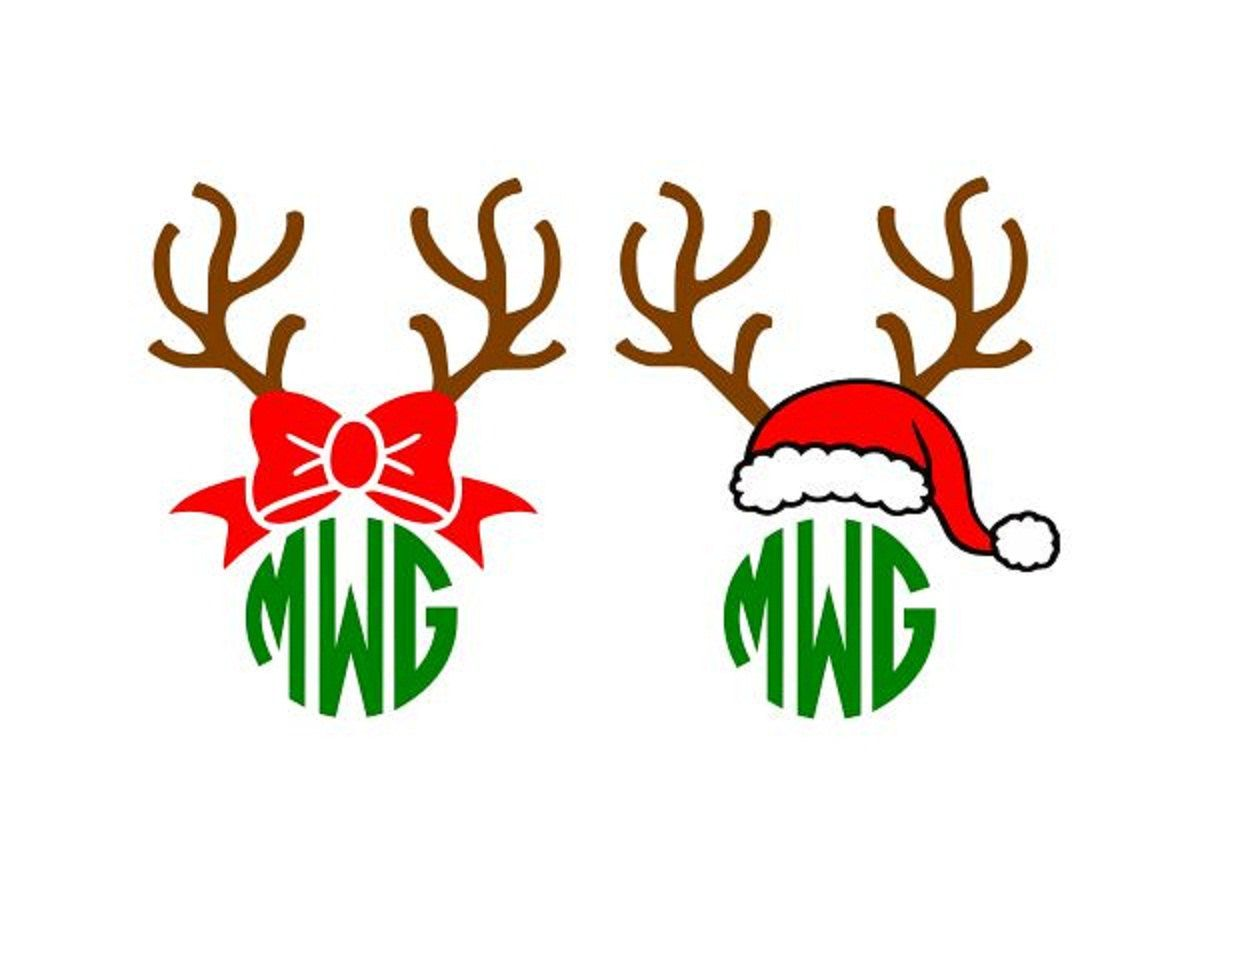 Christmas Bow Svg.Christmas Bow Silhouette At Getdrawings Com Free For